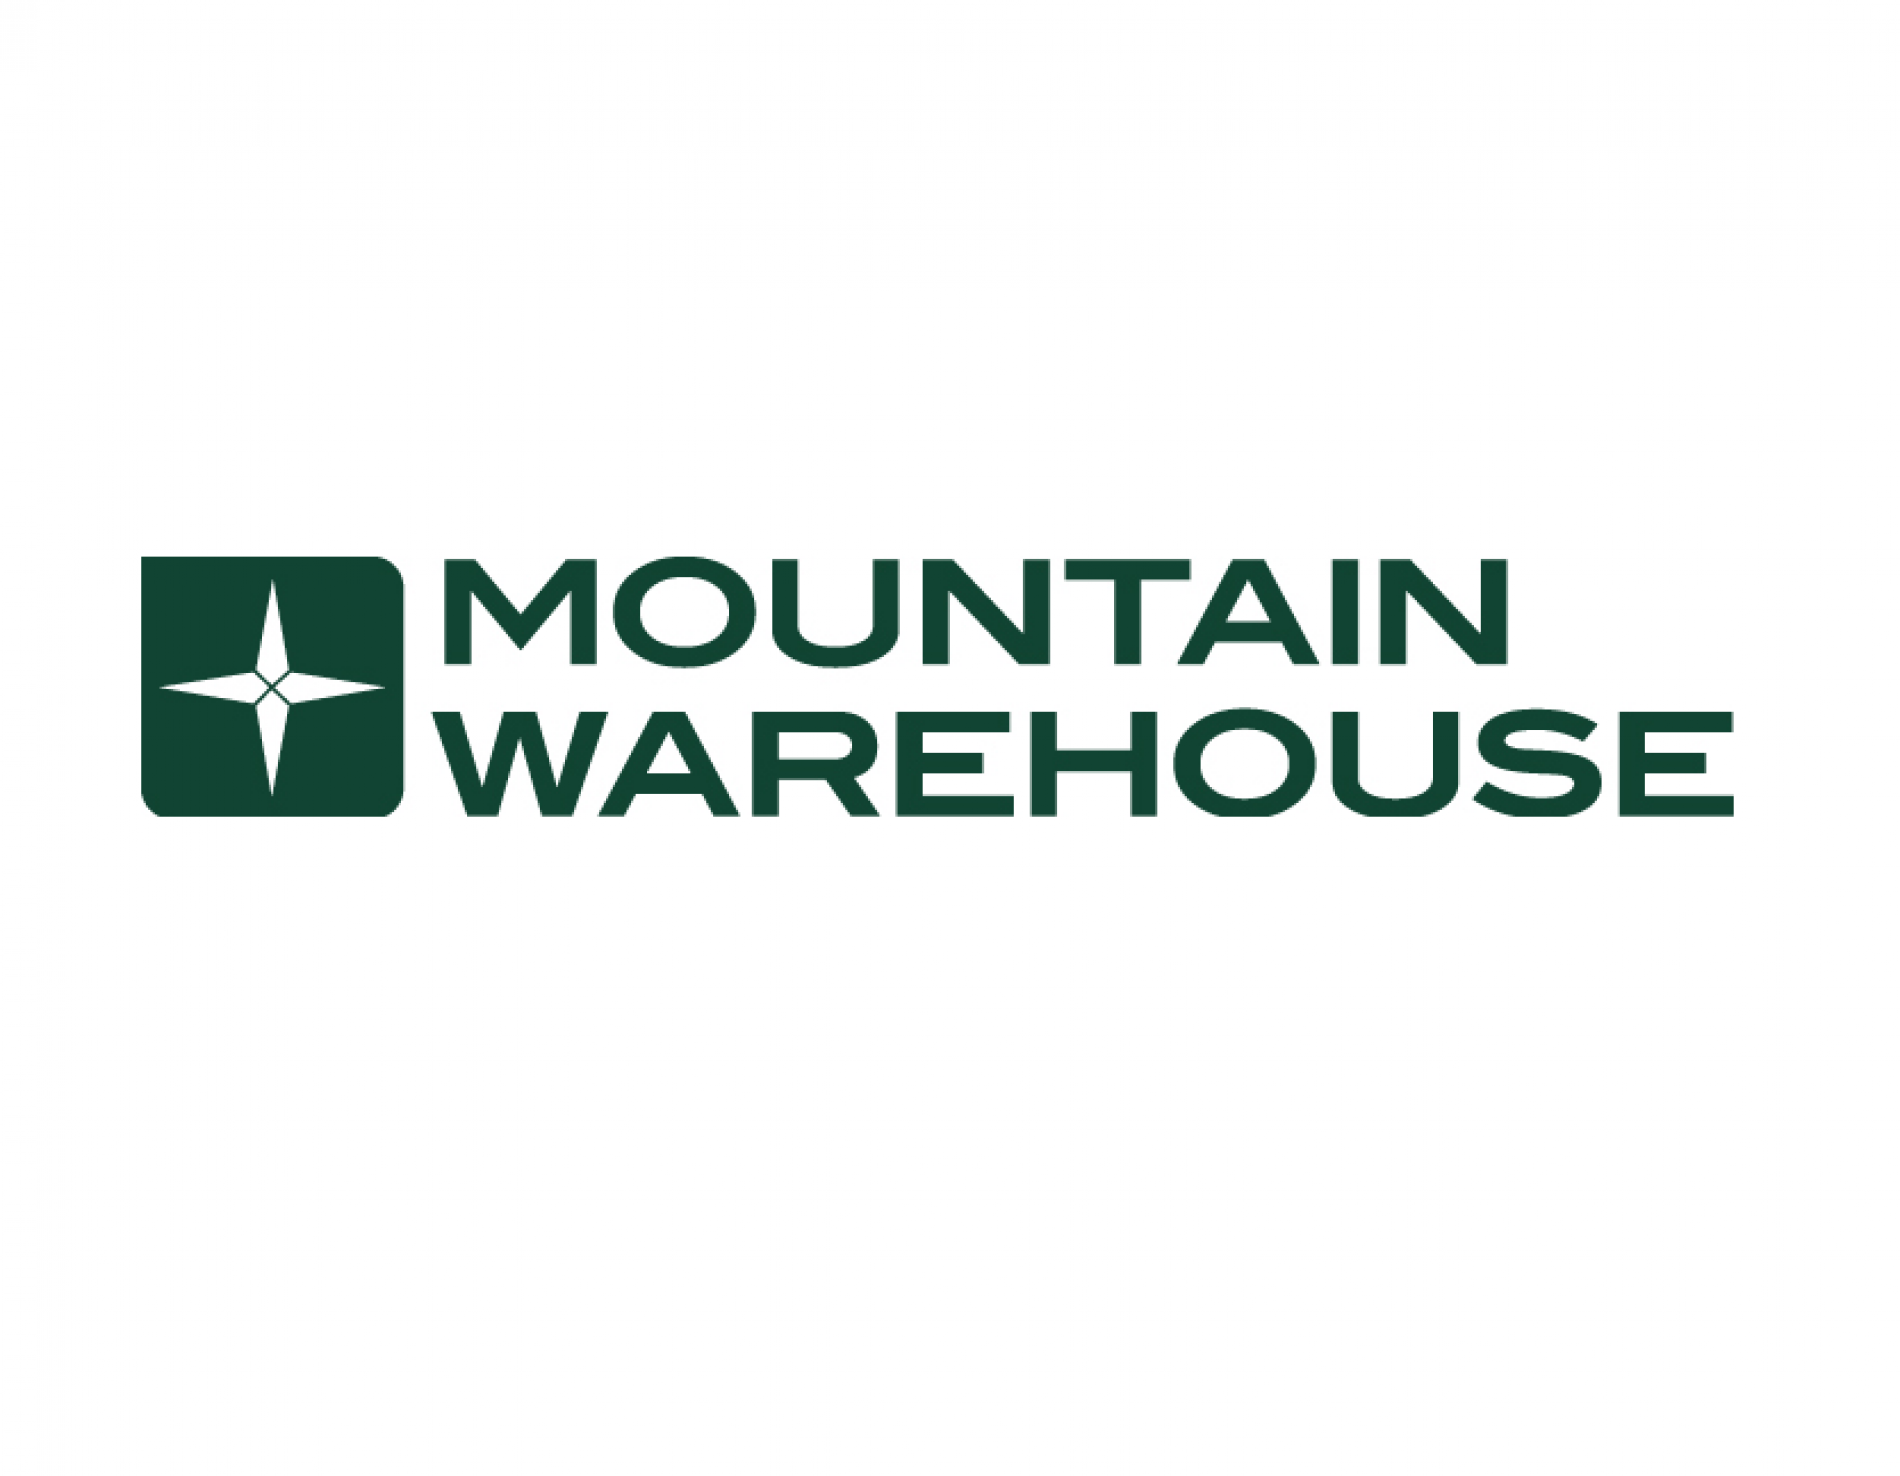 1 Mountain Warehouse on the Move